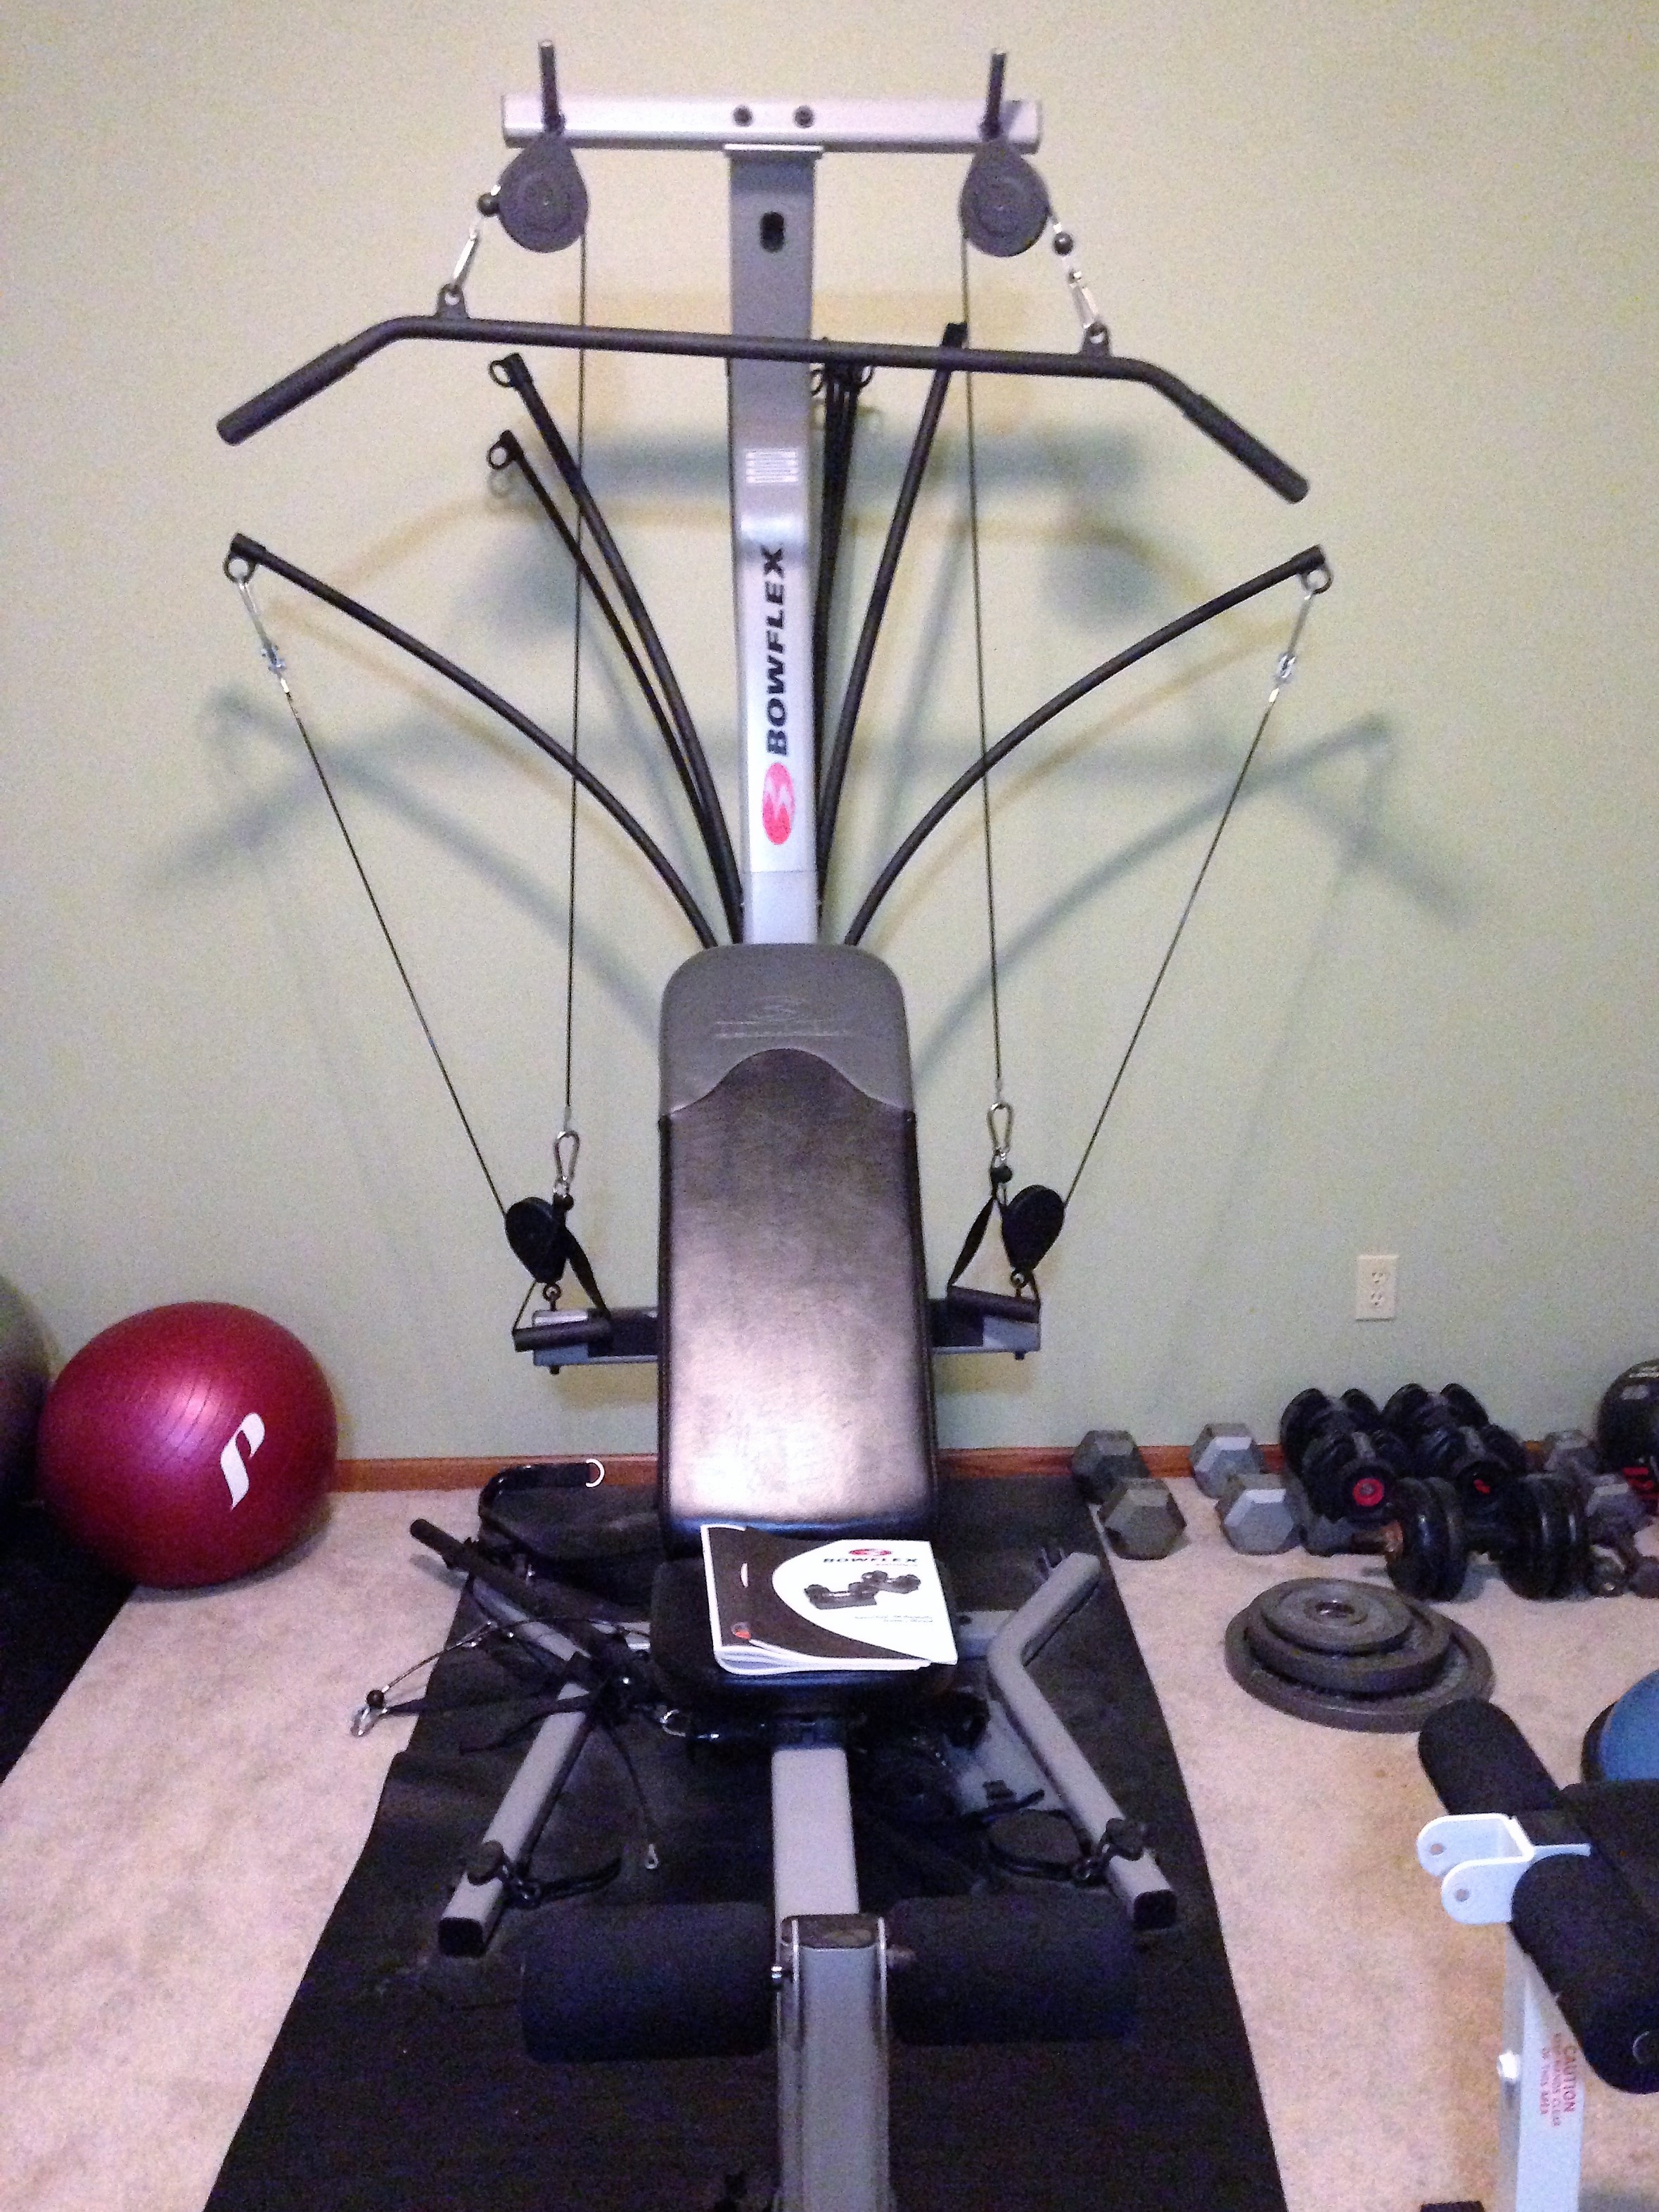 Bowflex conquest home gym wyoming mn moving sale large variety